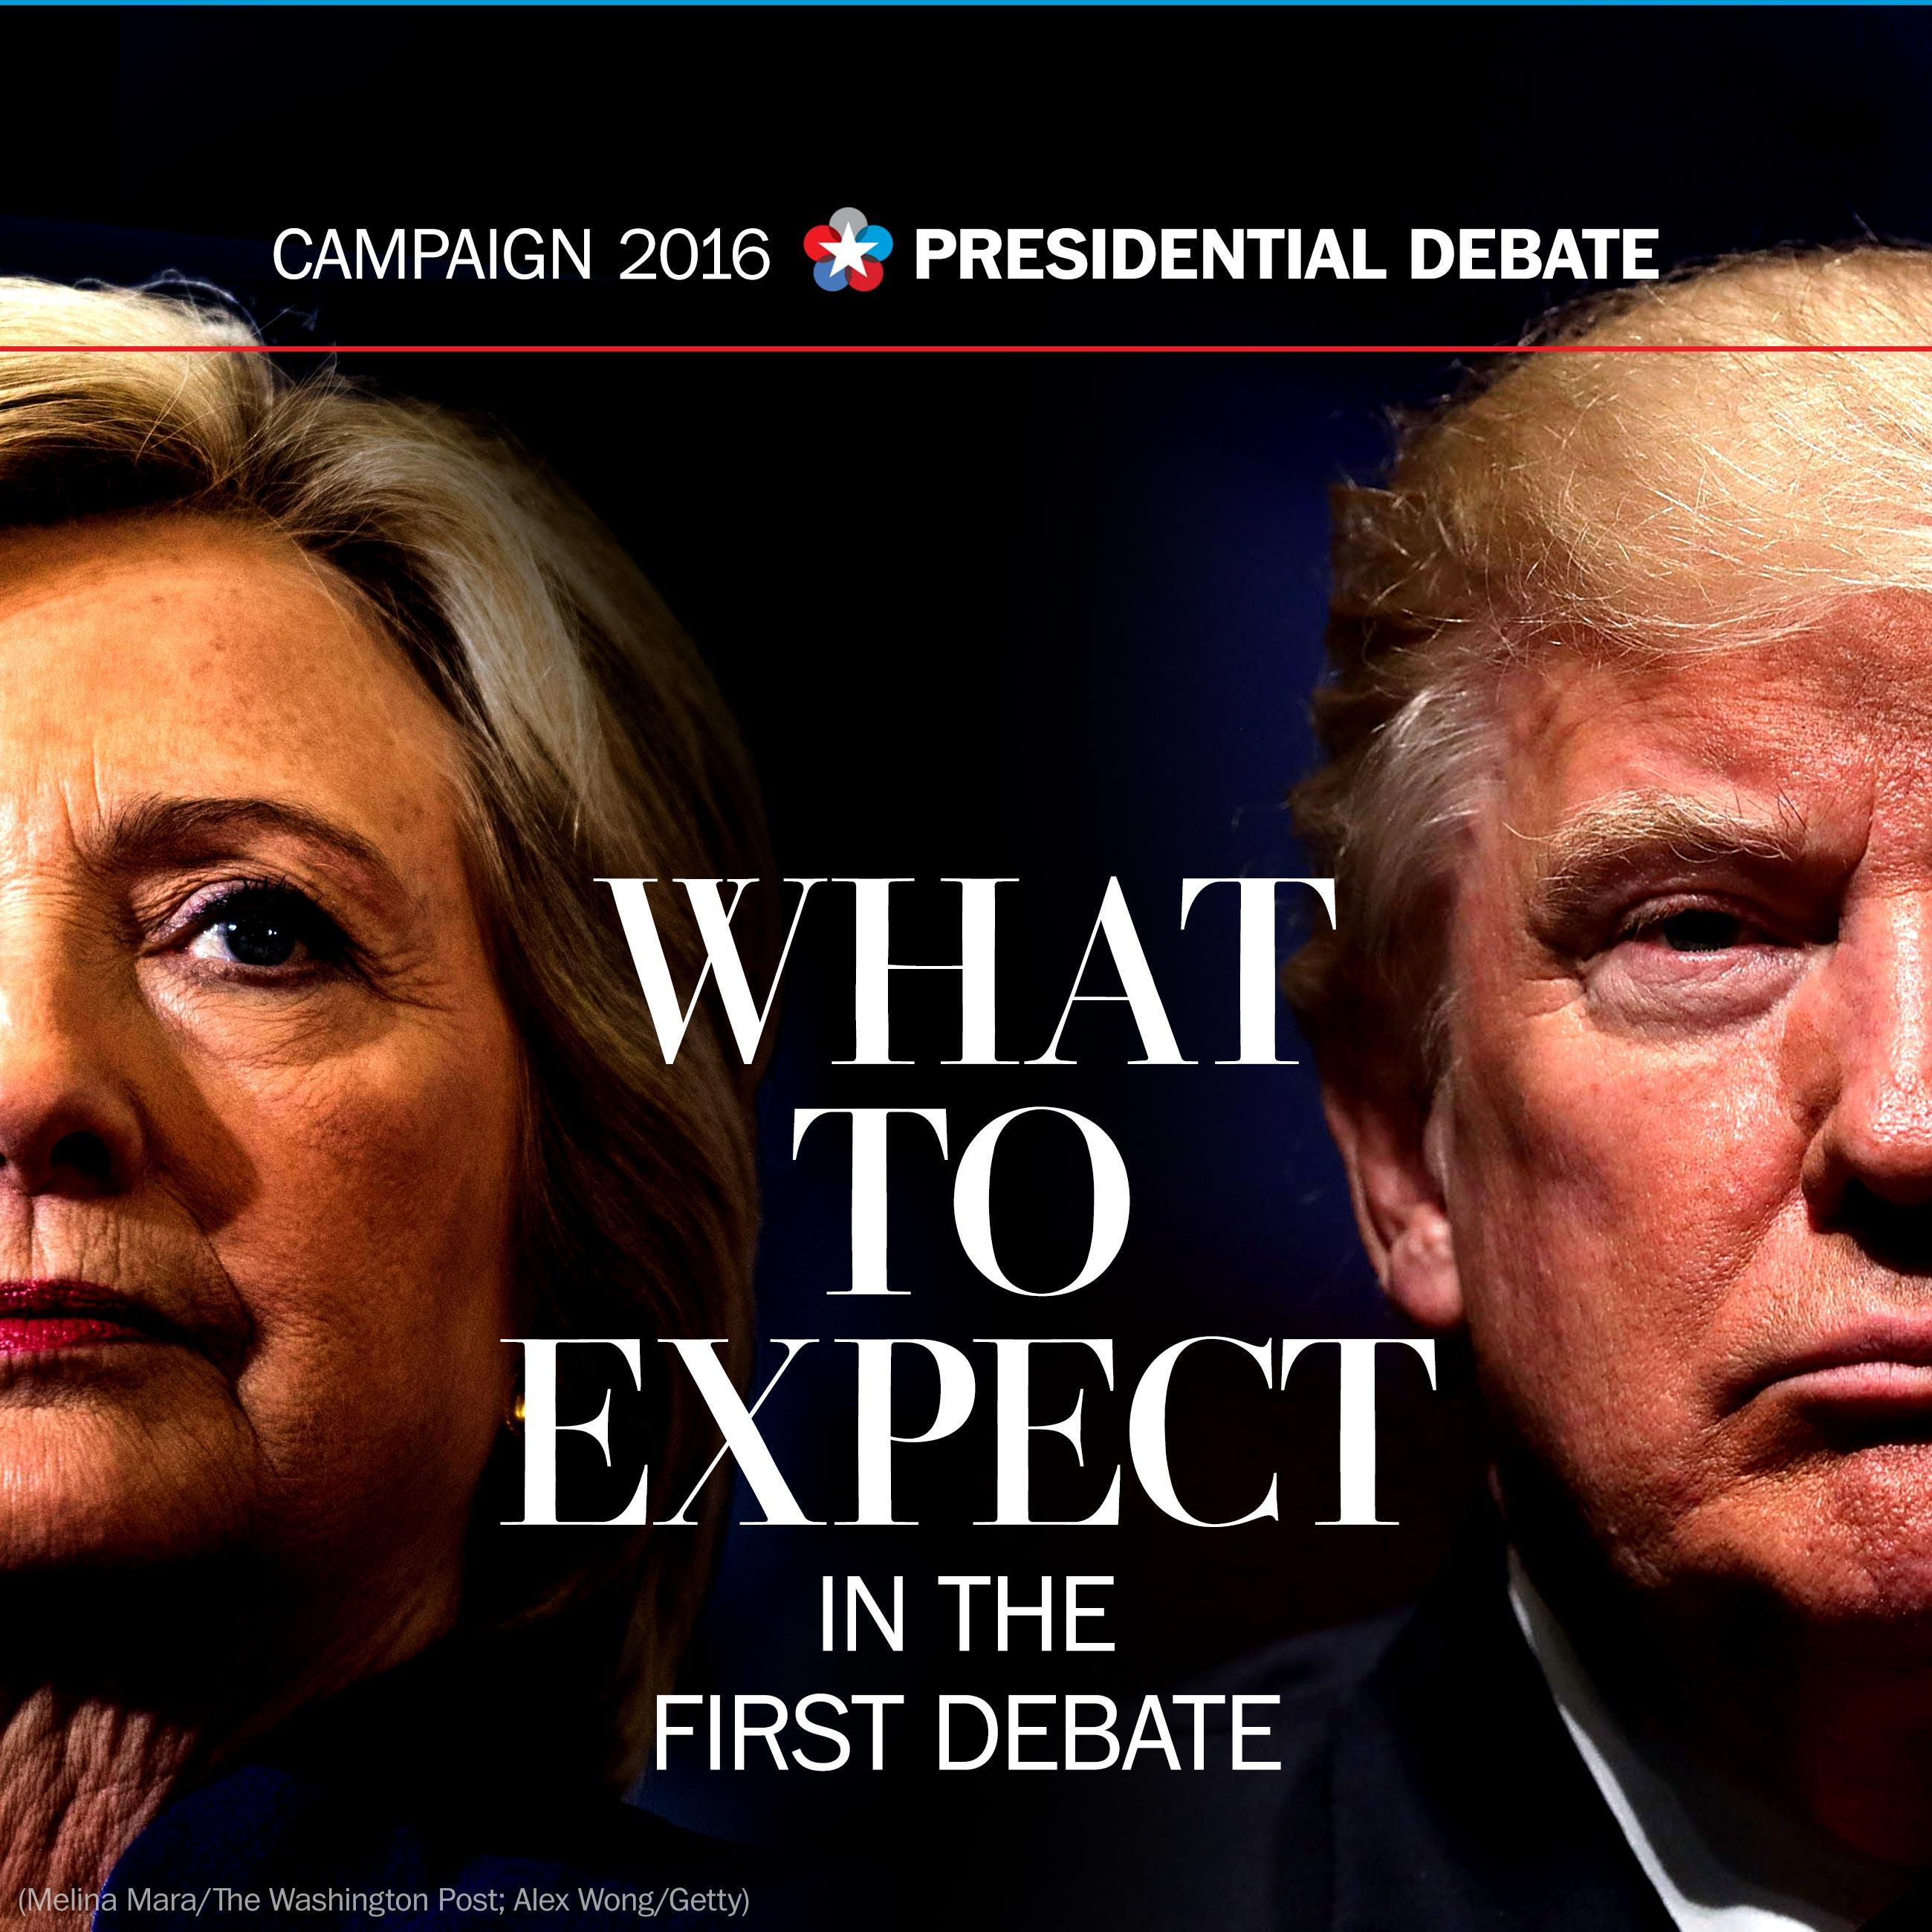 What can we expect from Clinton and Trump in the debate?